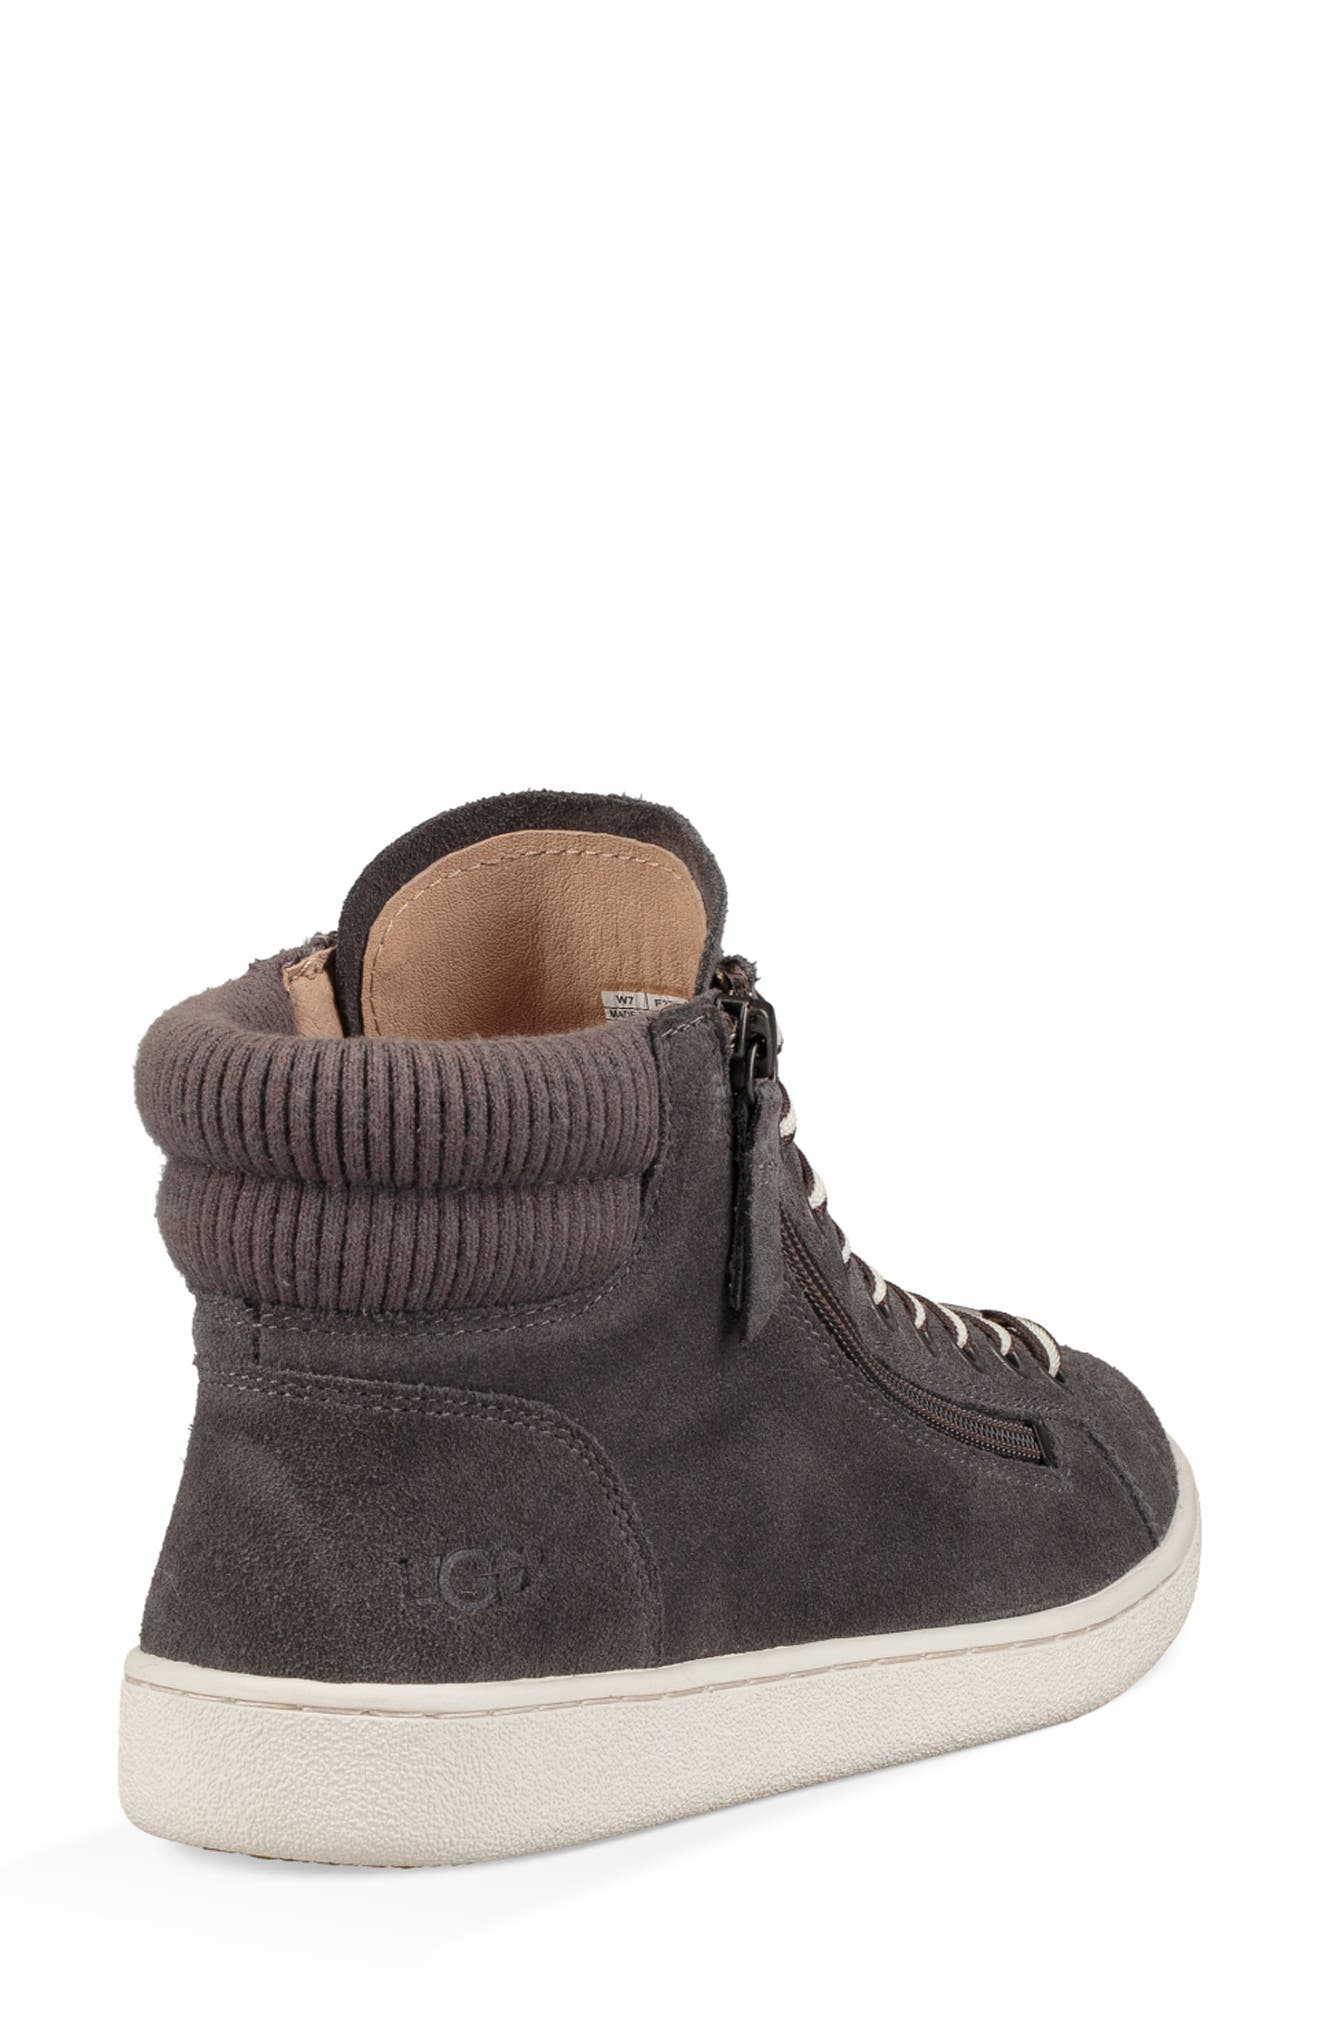 UGG Olive High Top Sneaker,                             Alternate thumbnail 2, color,                             CHARCOAL